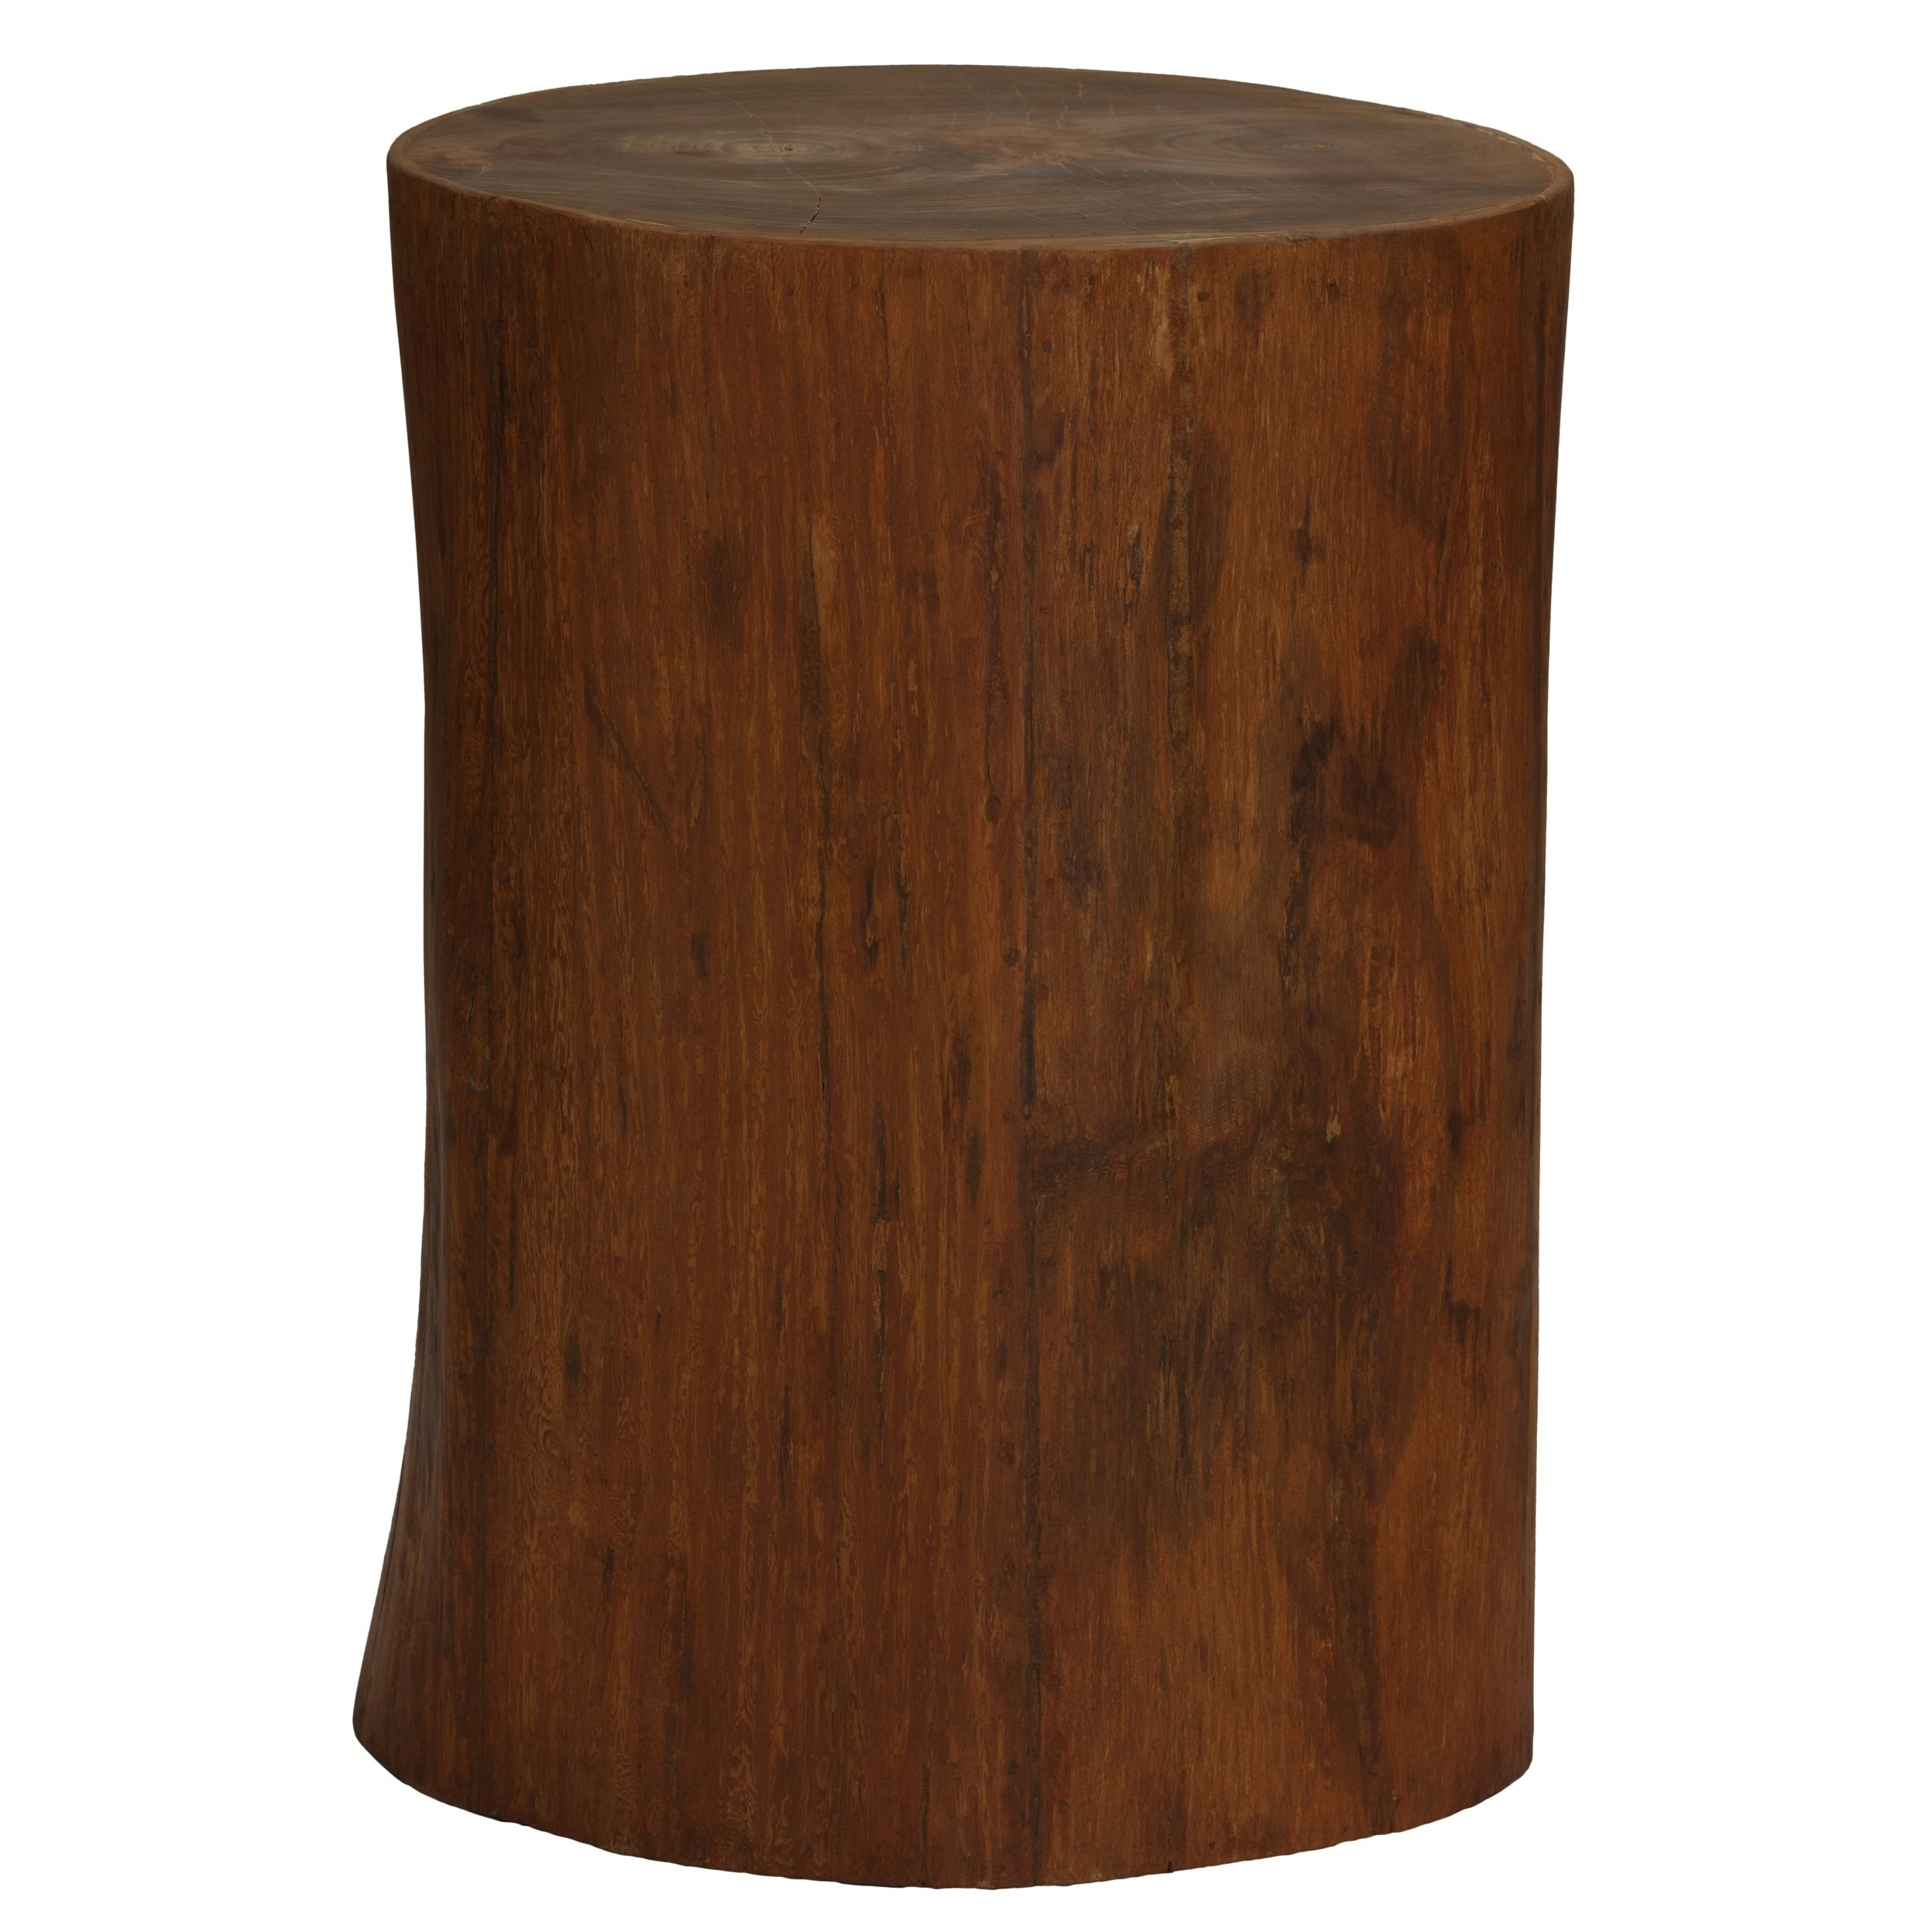 bare decor adi round tree stump end table stool free wood accent shipping today modern ideas touch lamps cherry set ceiling lamp shades green coffee outside and chairs painted